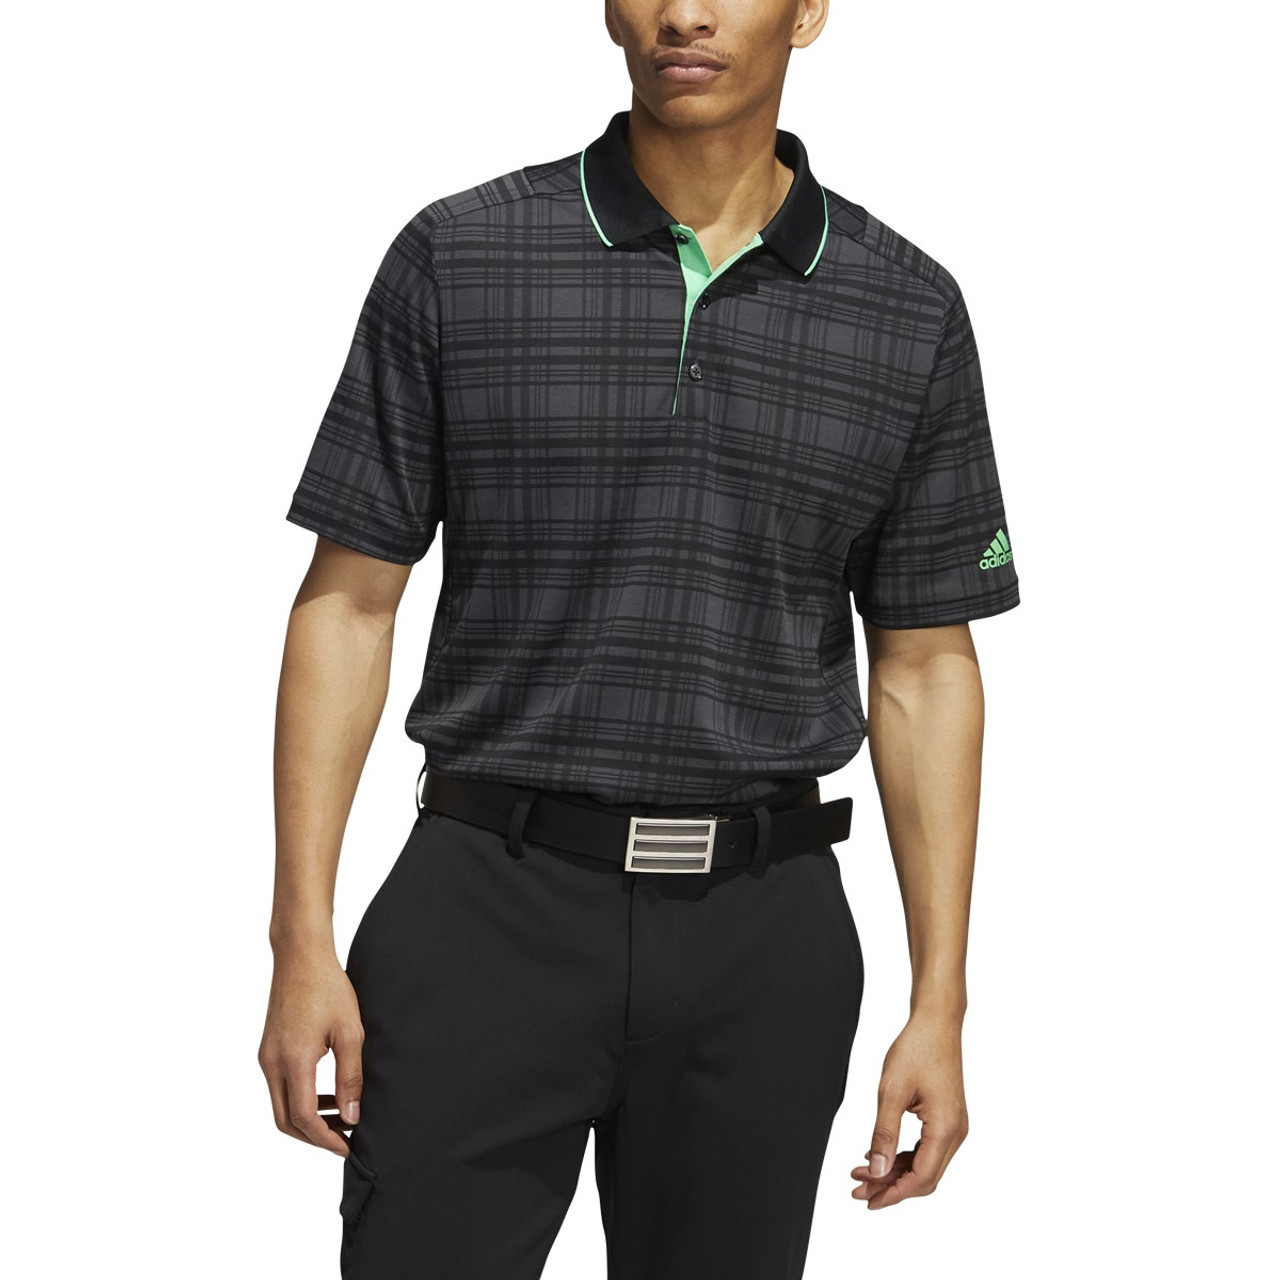 Adidas Statement No Show Polo - Carbon / Jungle Ink